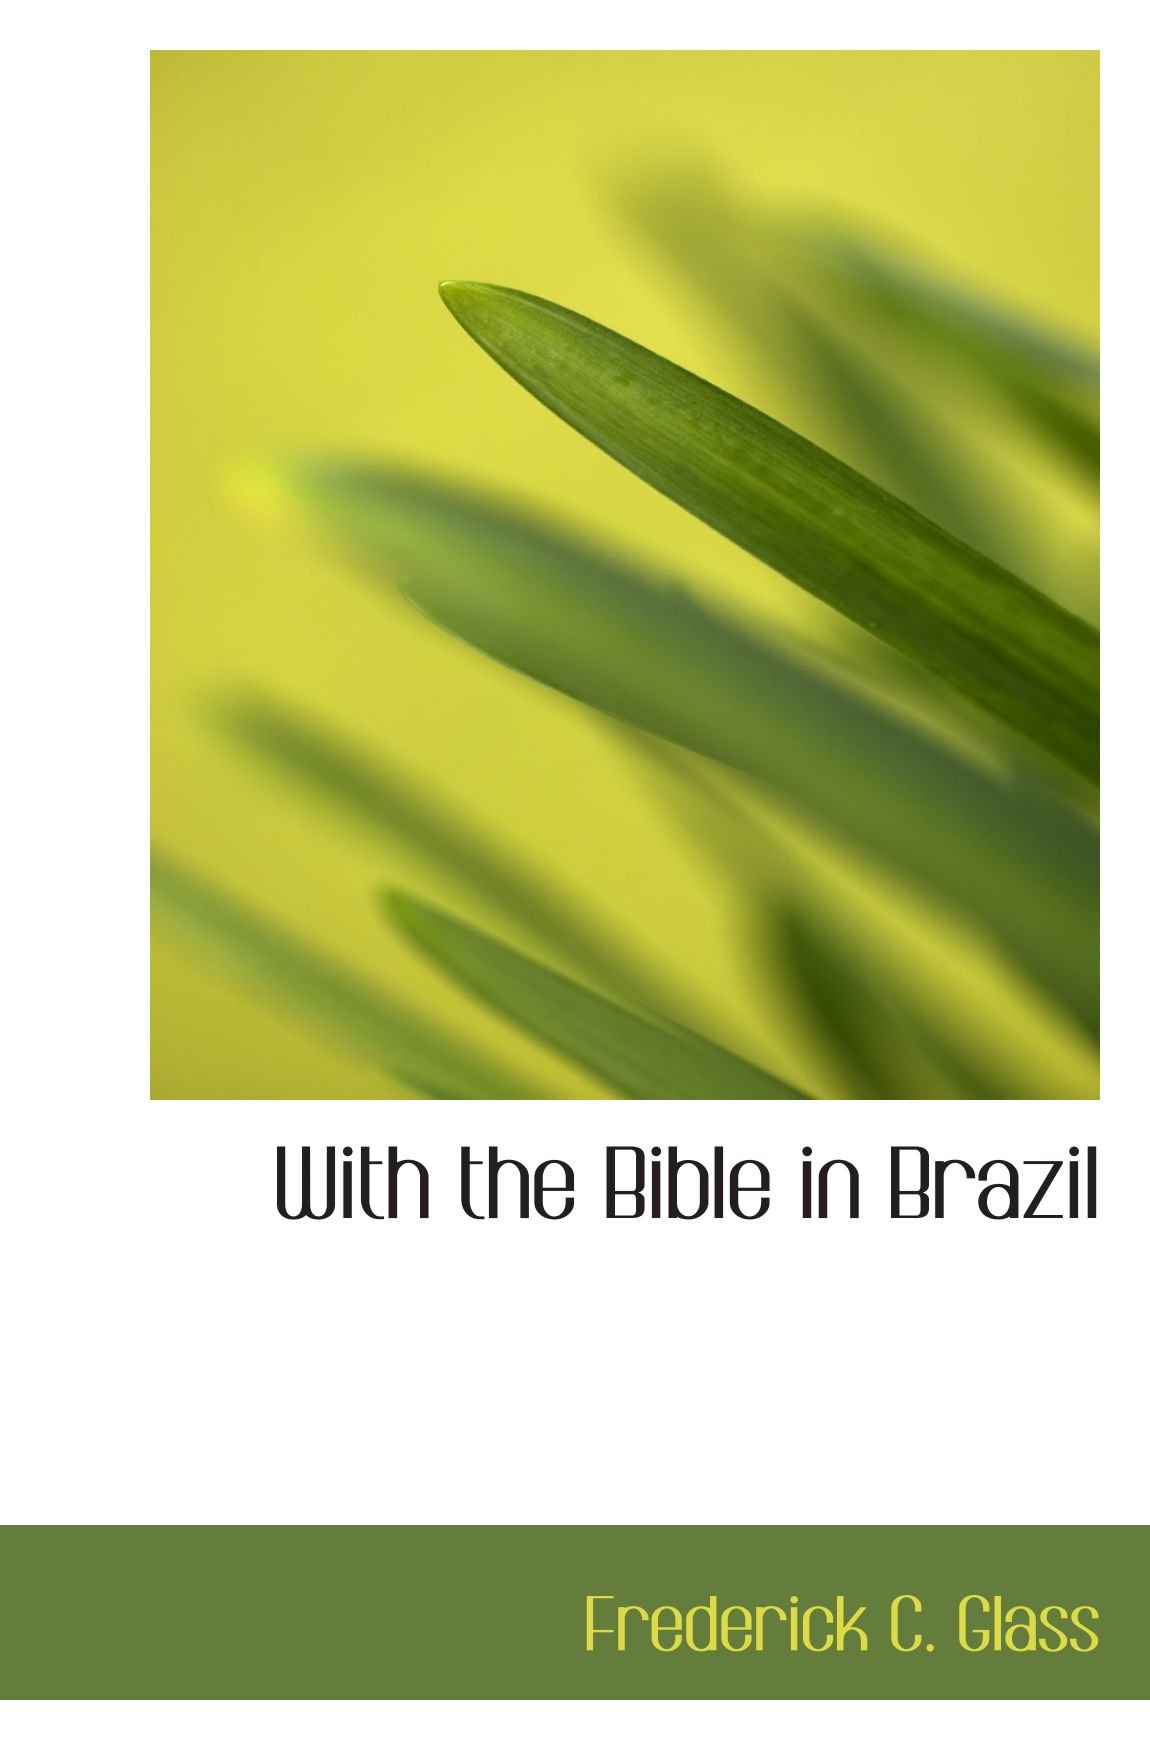 With the Bible in Brazil